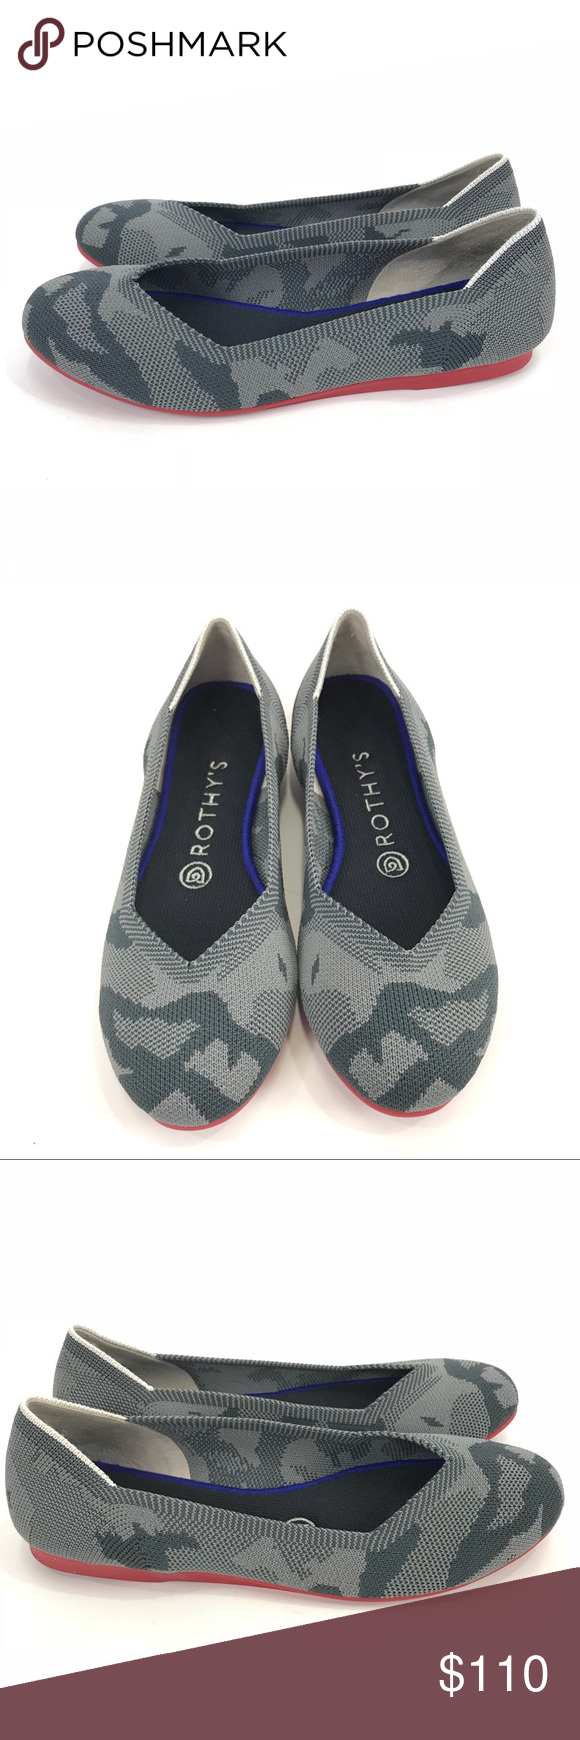 89db7acce9e4 Rothy s Grey Camo Flat Red Sole Round Toe Rothy s Grey Camo Flat Size 7 Red  Sole Round Toe Washable Soft Strong Recycled Condition  Pre-owned Gently  Worn ...